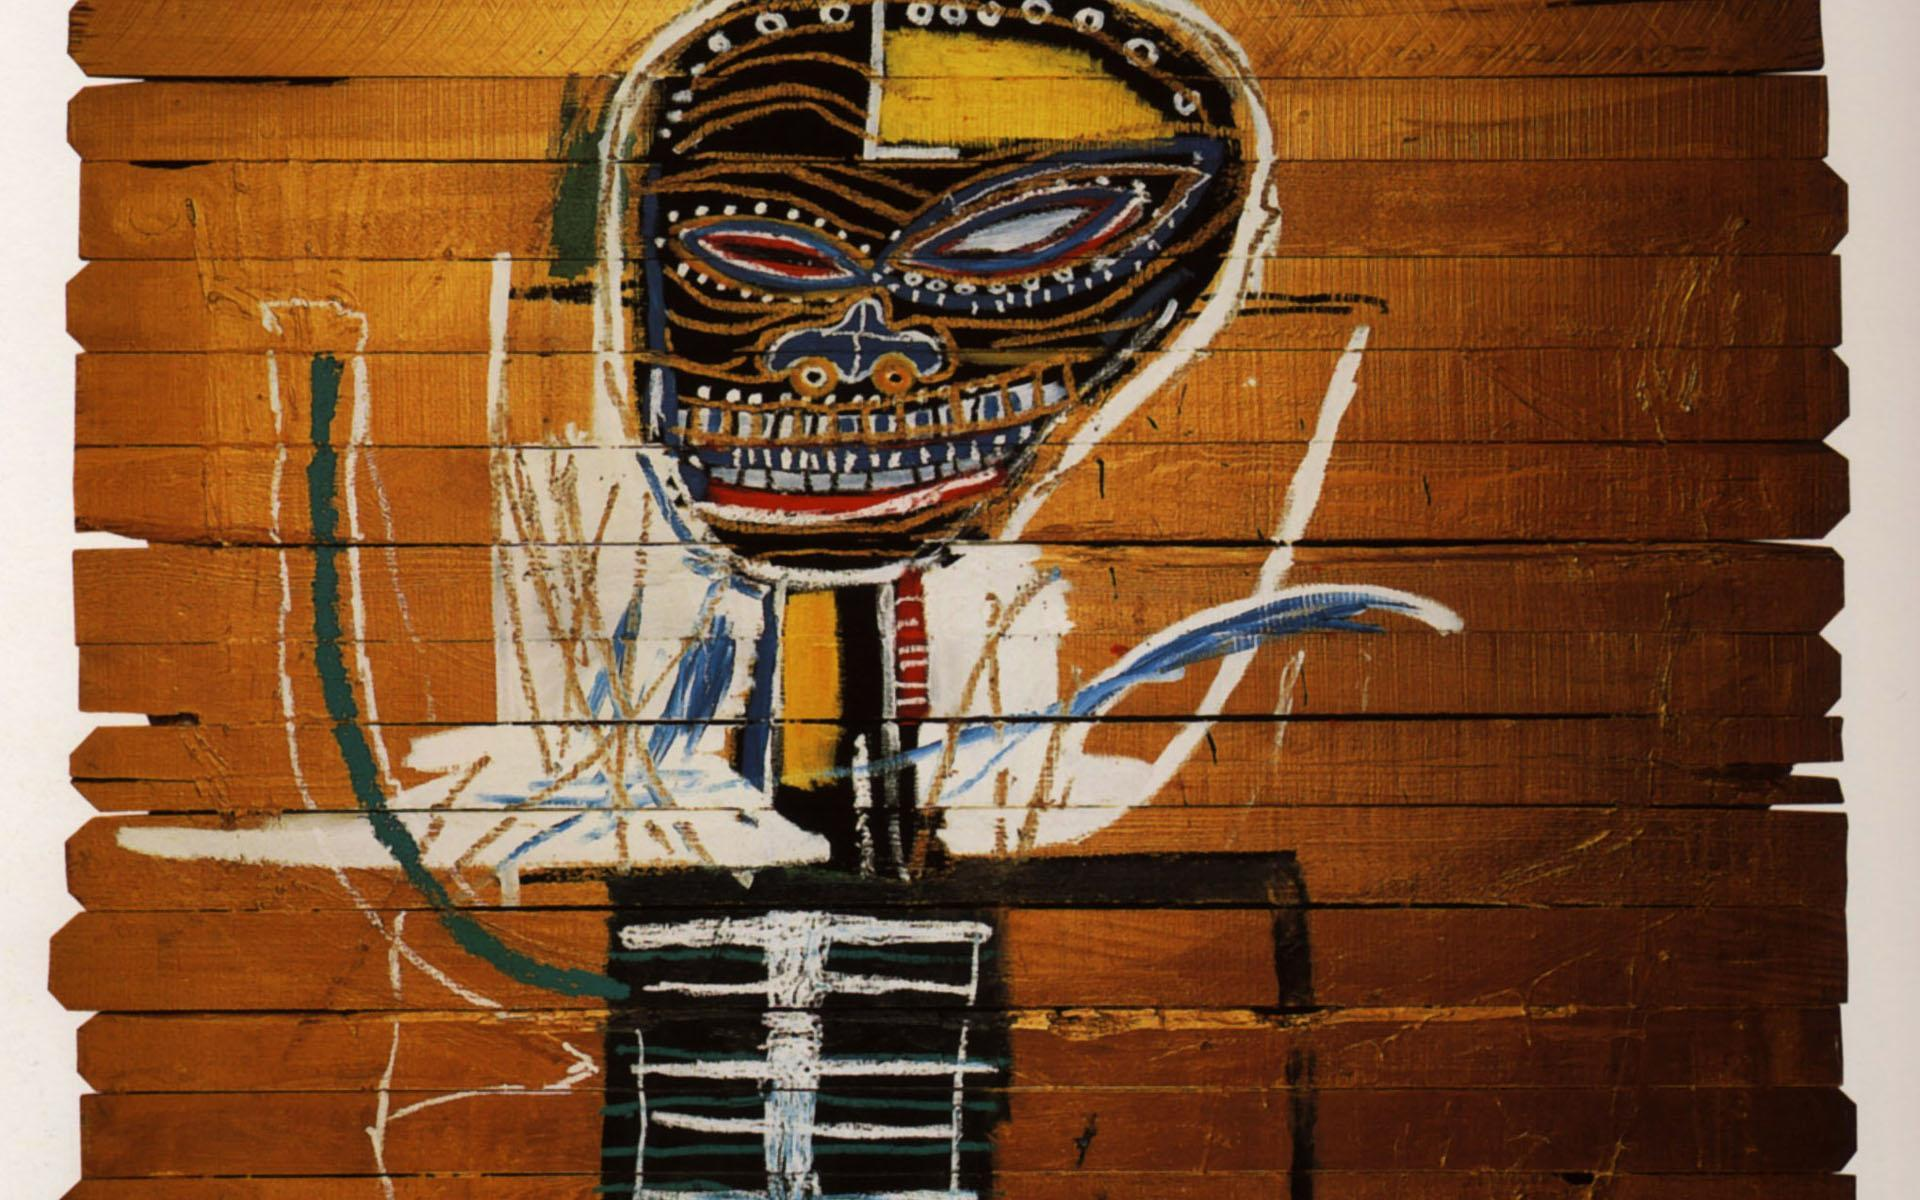 Jean-Michel Basquiat Wallpaper, Gold Griot | Wallpaper